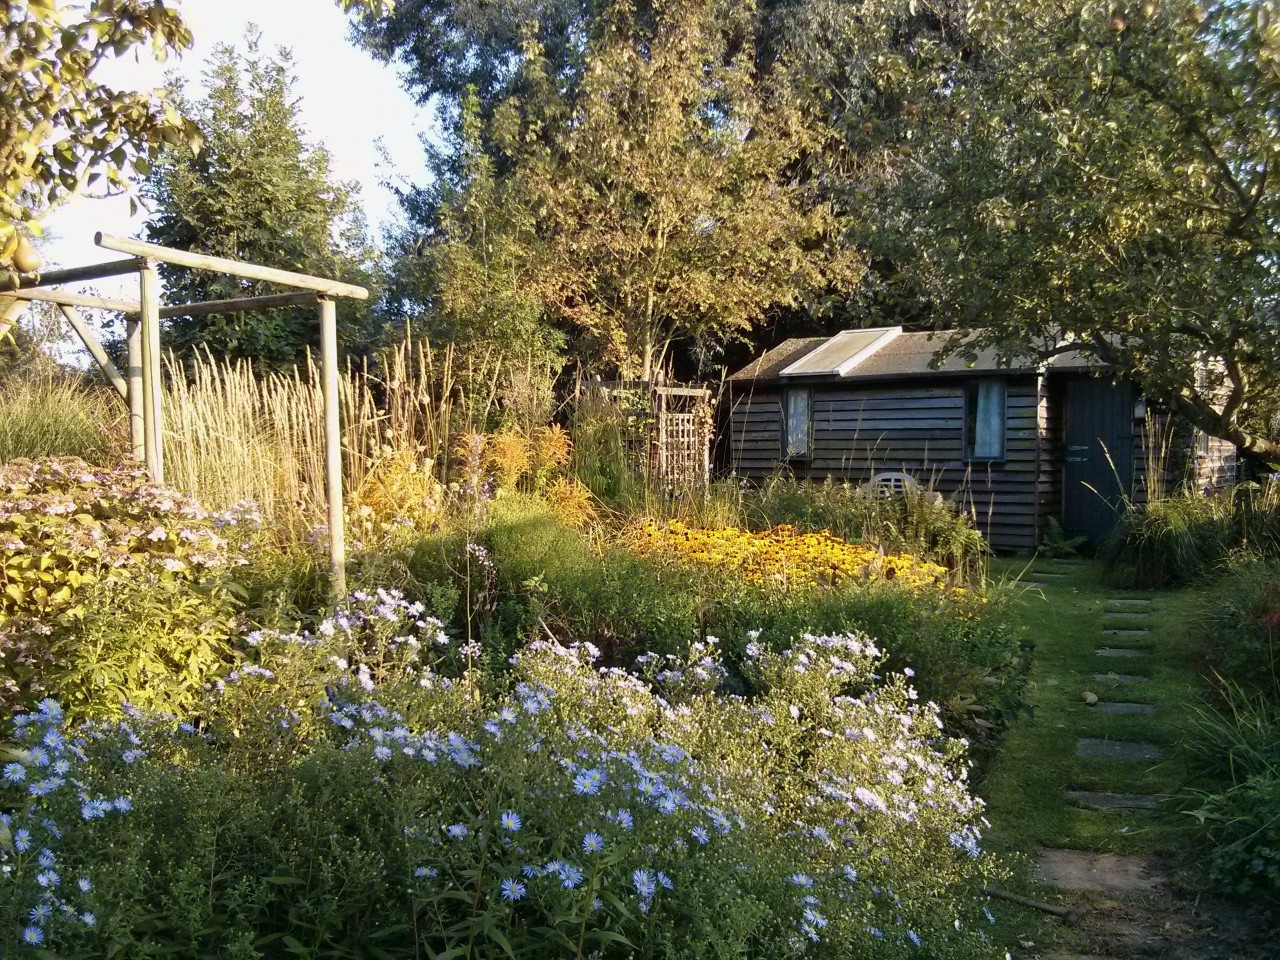 It has been a rather hectic week so not much time to blog; but here is the garden with the trellis mostly removed.